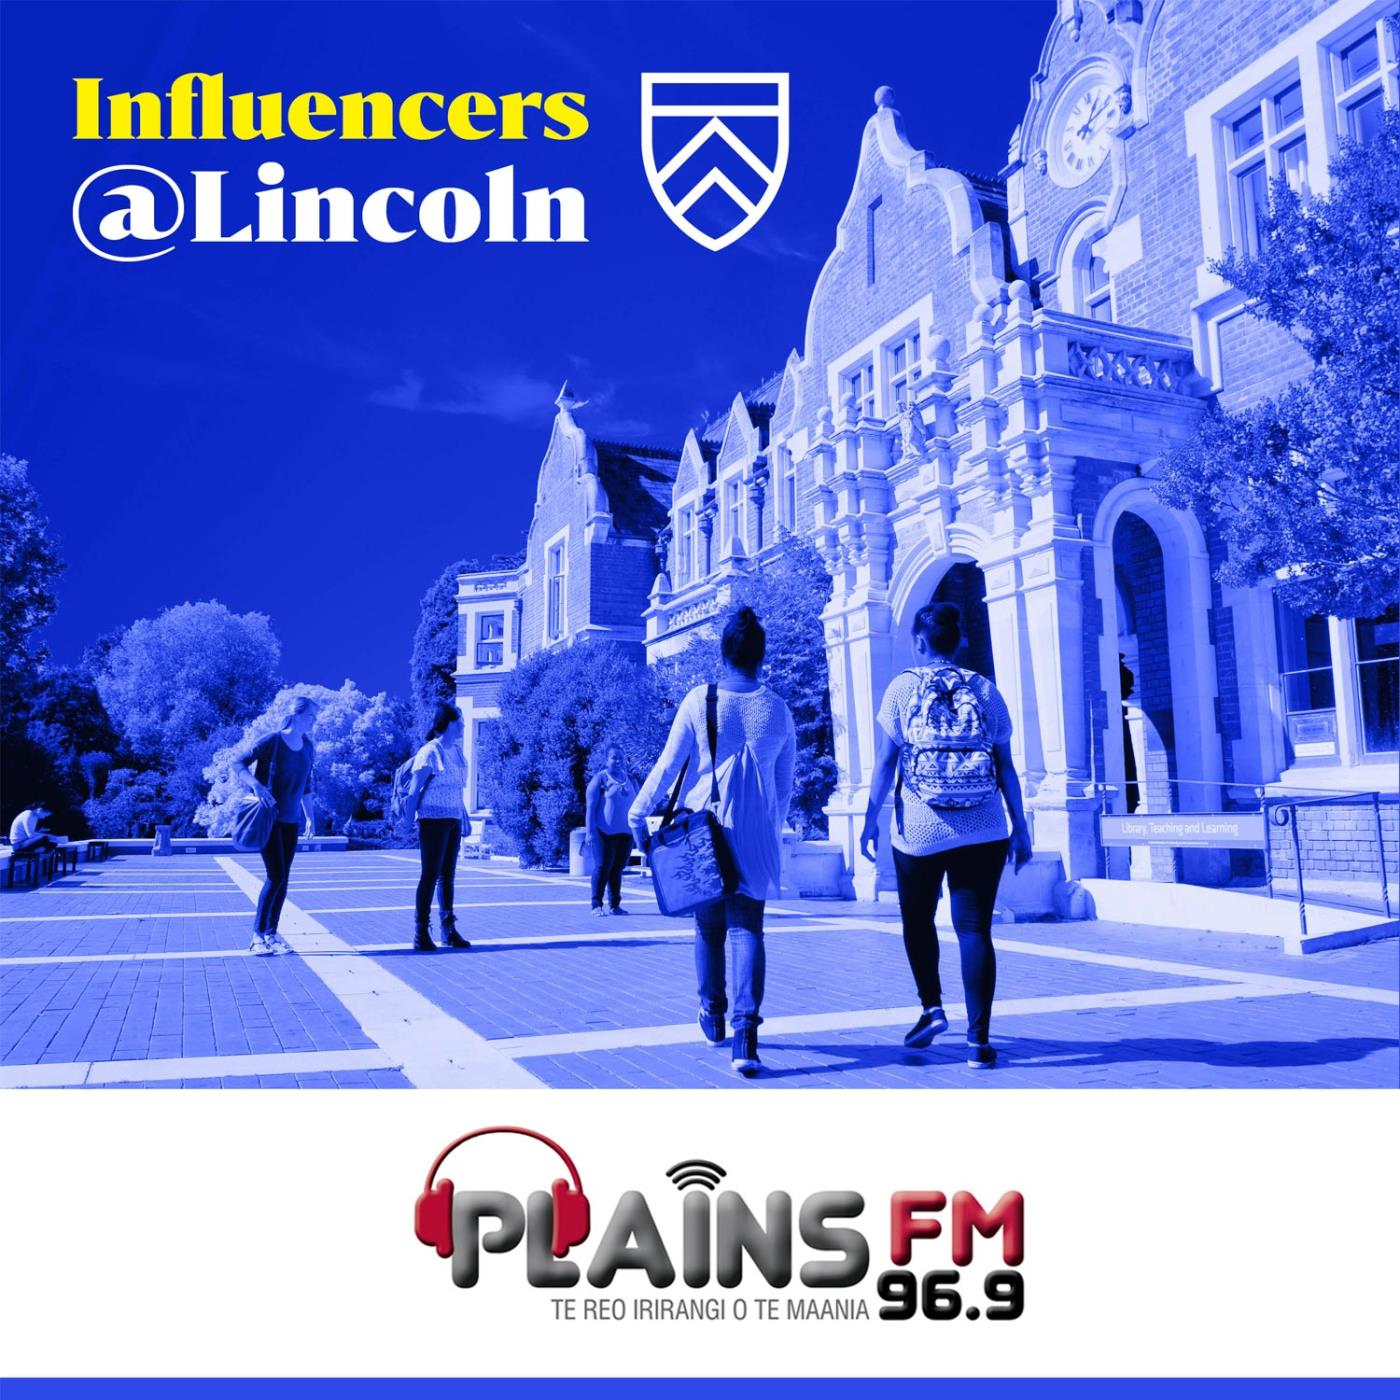 Influencers@Lincoln